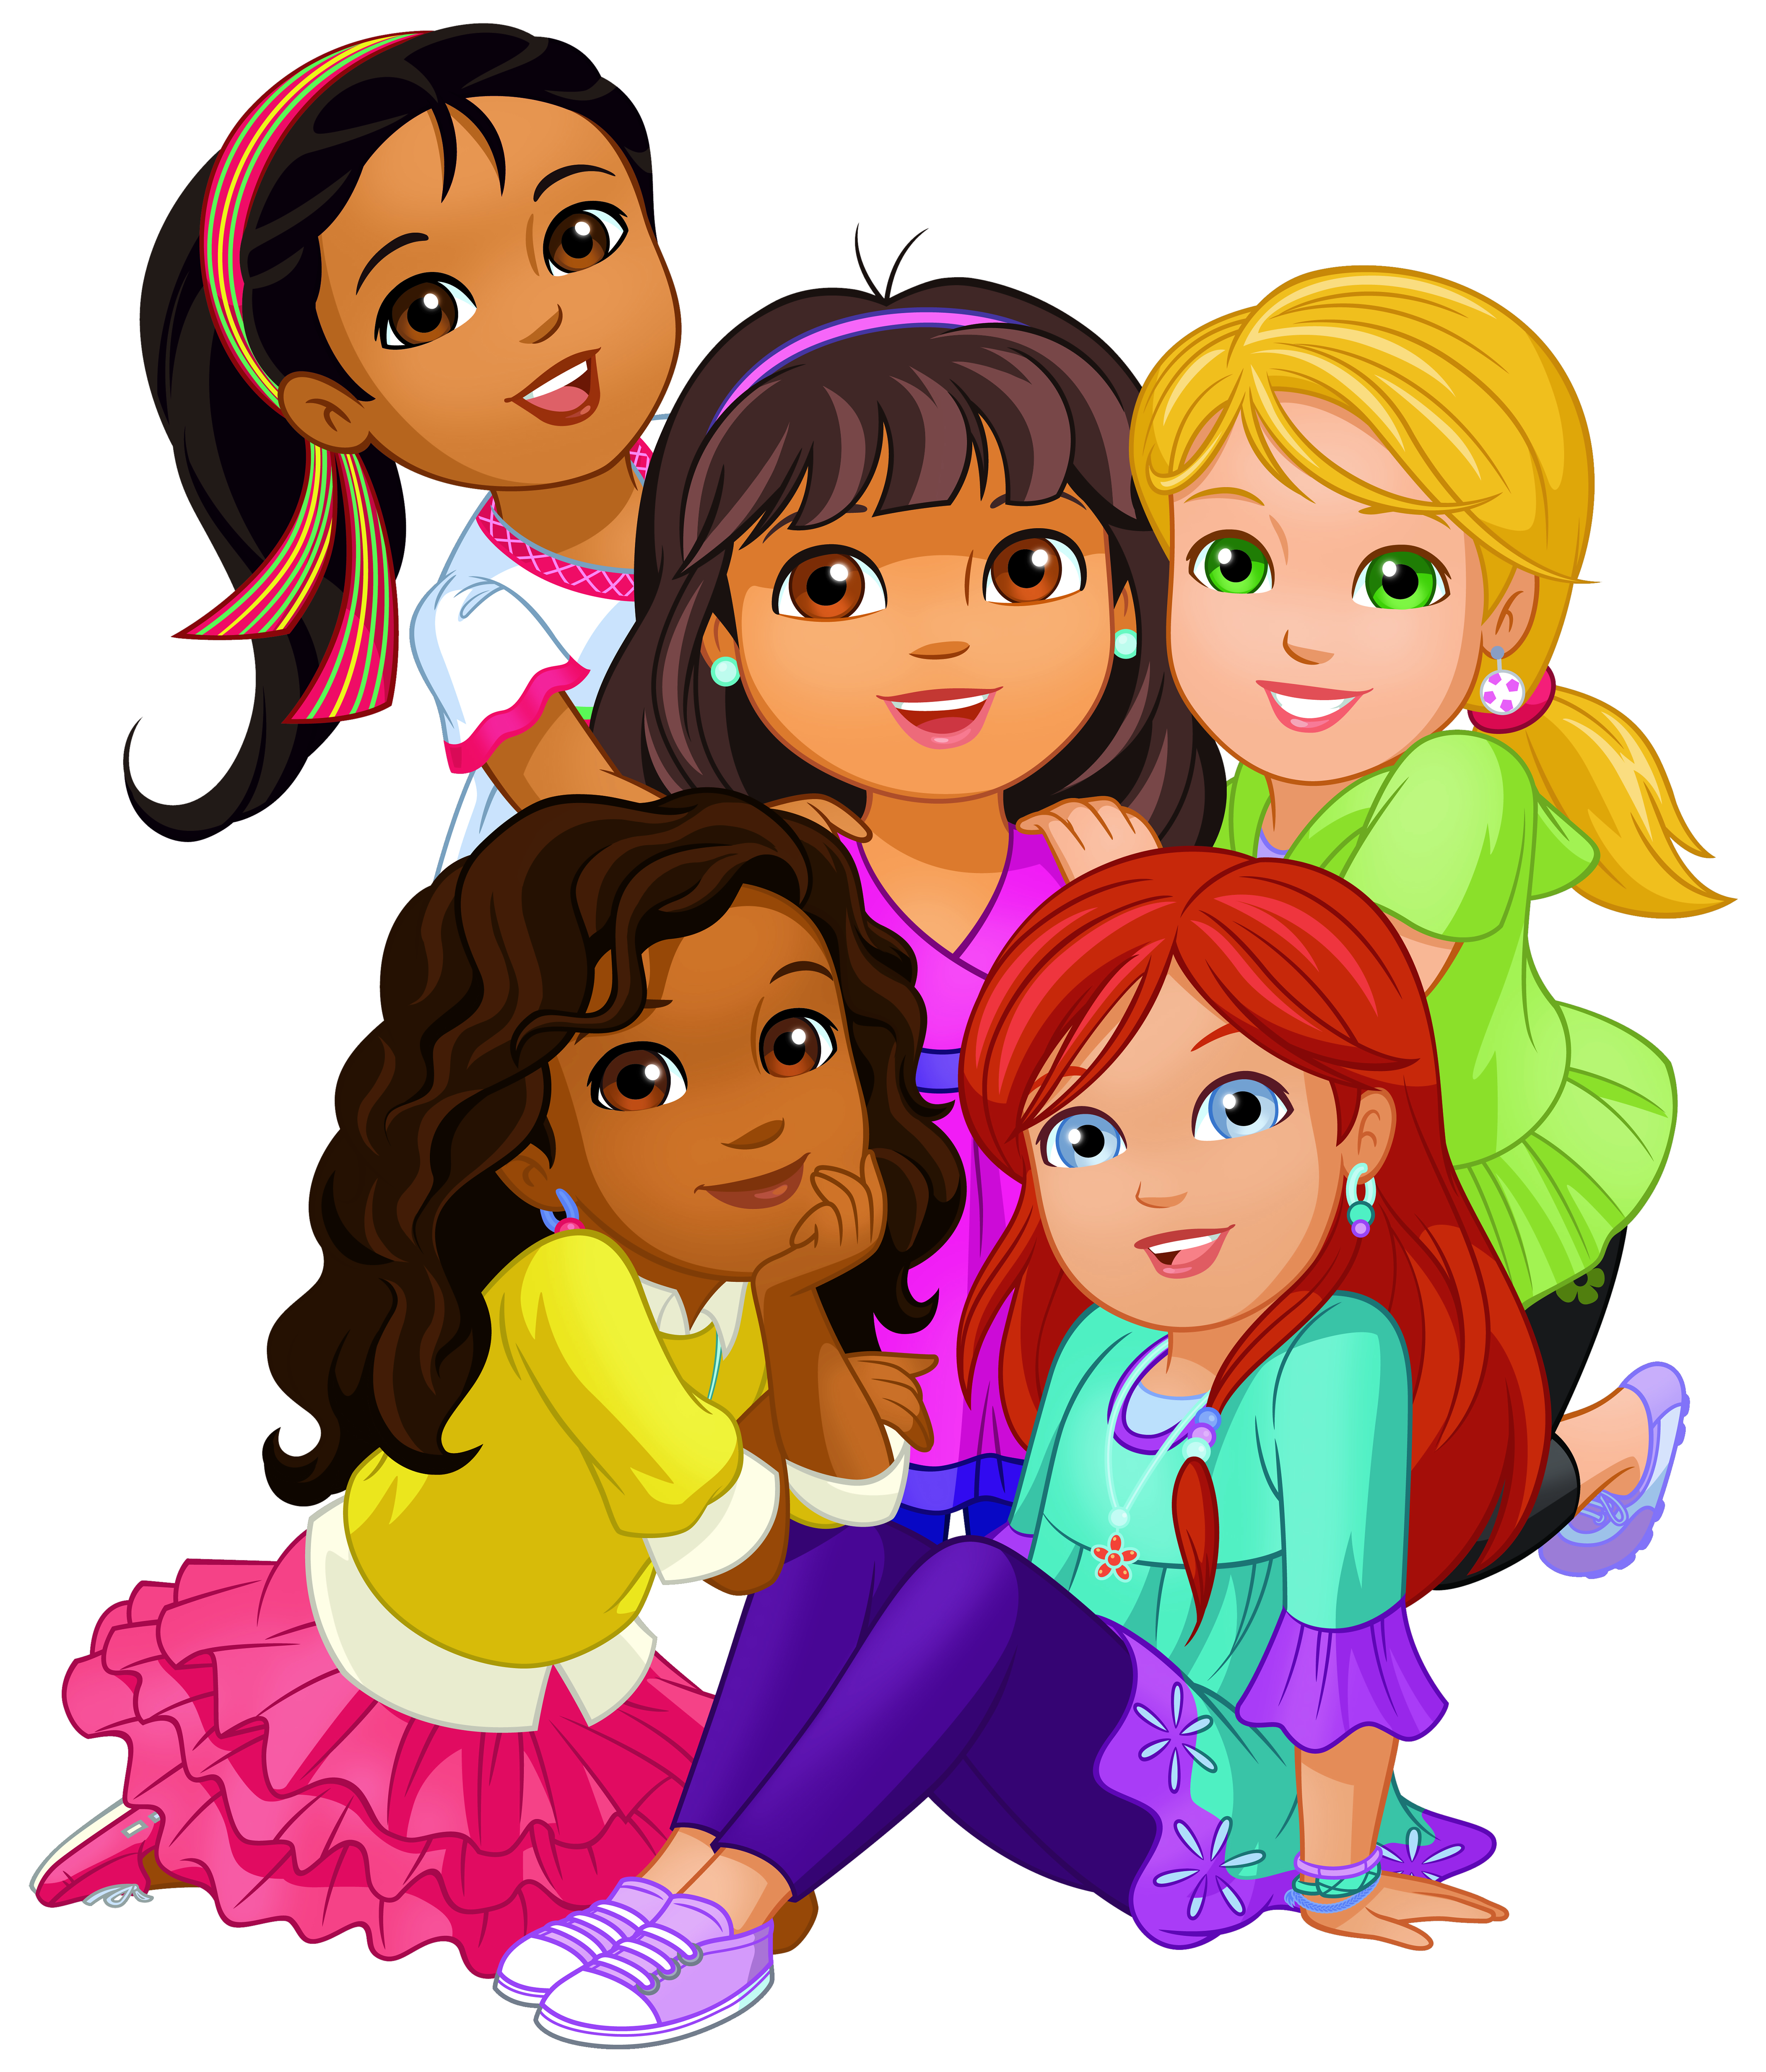 Dora and png clip. Friendship clipart friends house transparent stock